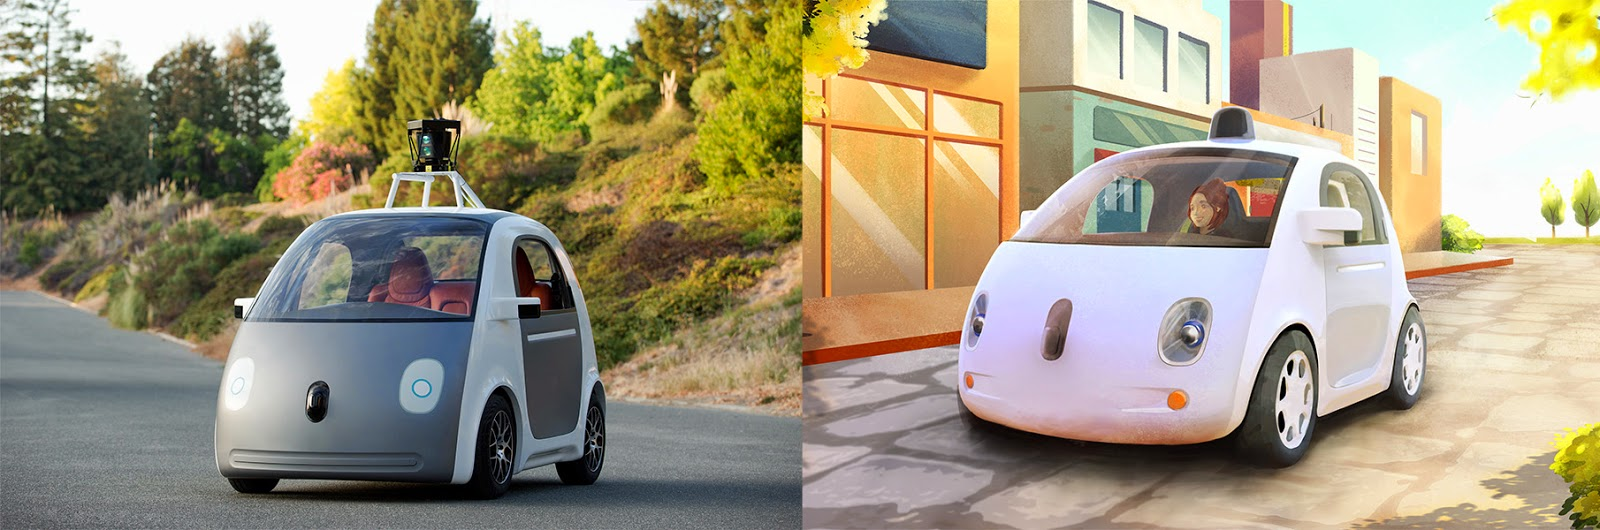 Google self-driving car Vehicle Prototype Image Banner Cropped 600px